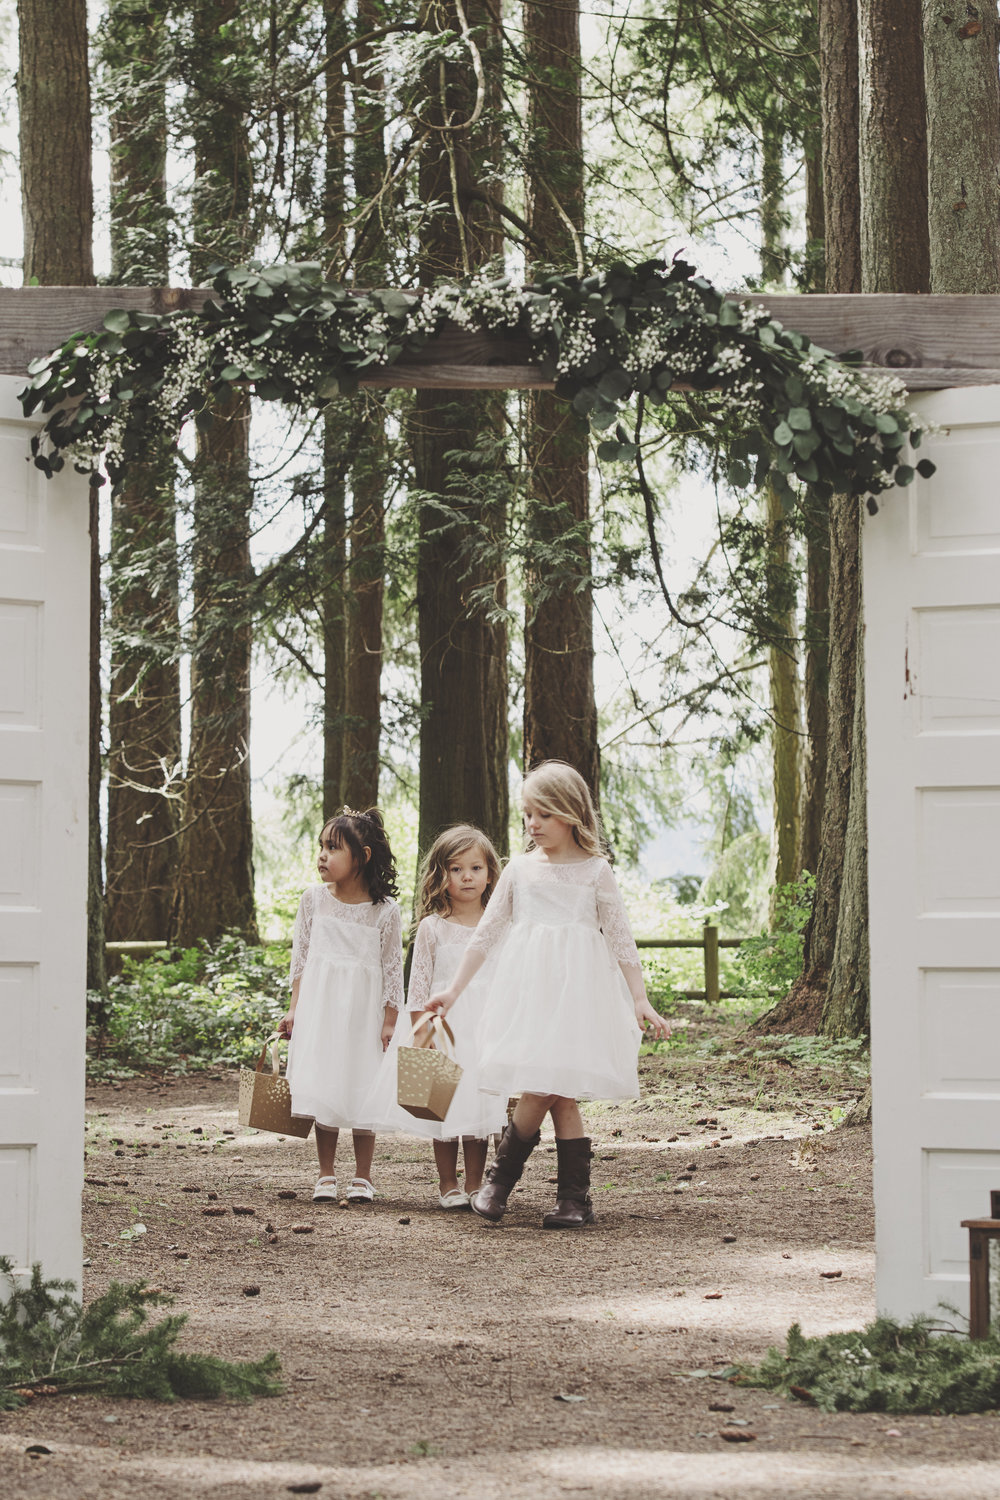 A Gorgeous Forest Wedding | Poulsbo Wedding | Kelsey Lane Photography | Flower Girls